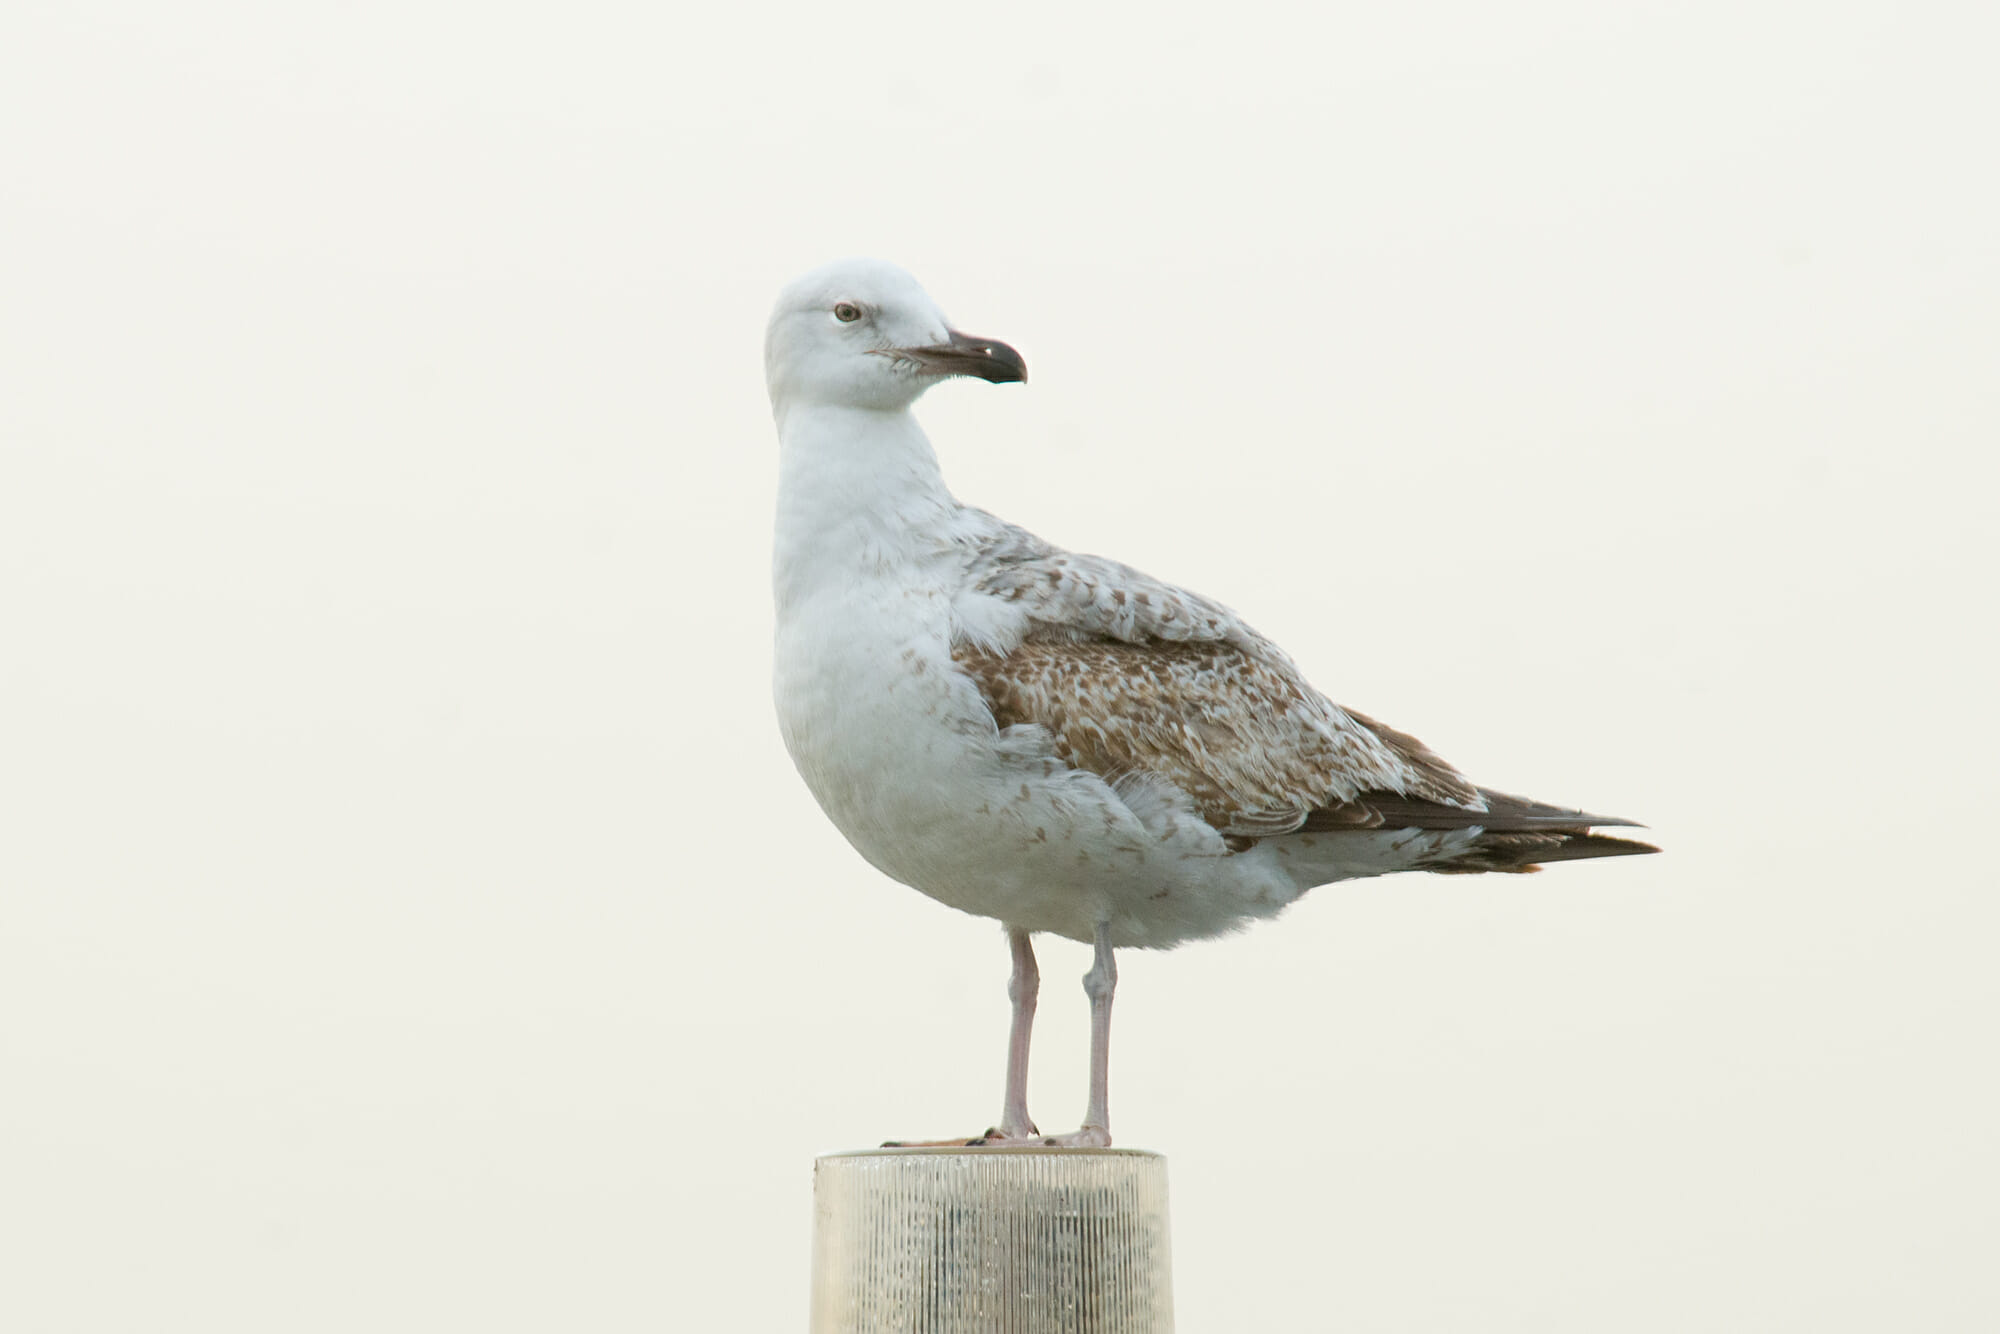 Juvenile Yellow-footed gull in Istanbul